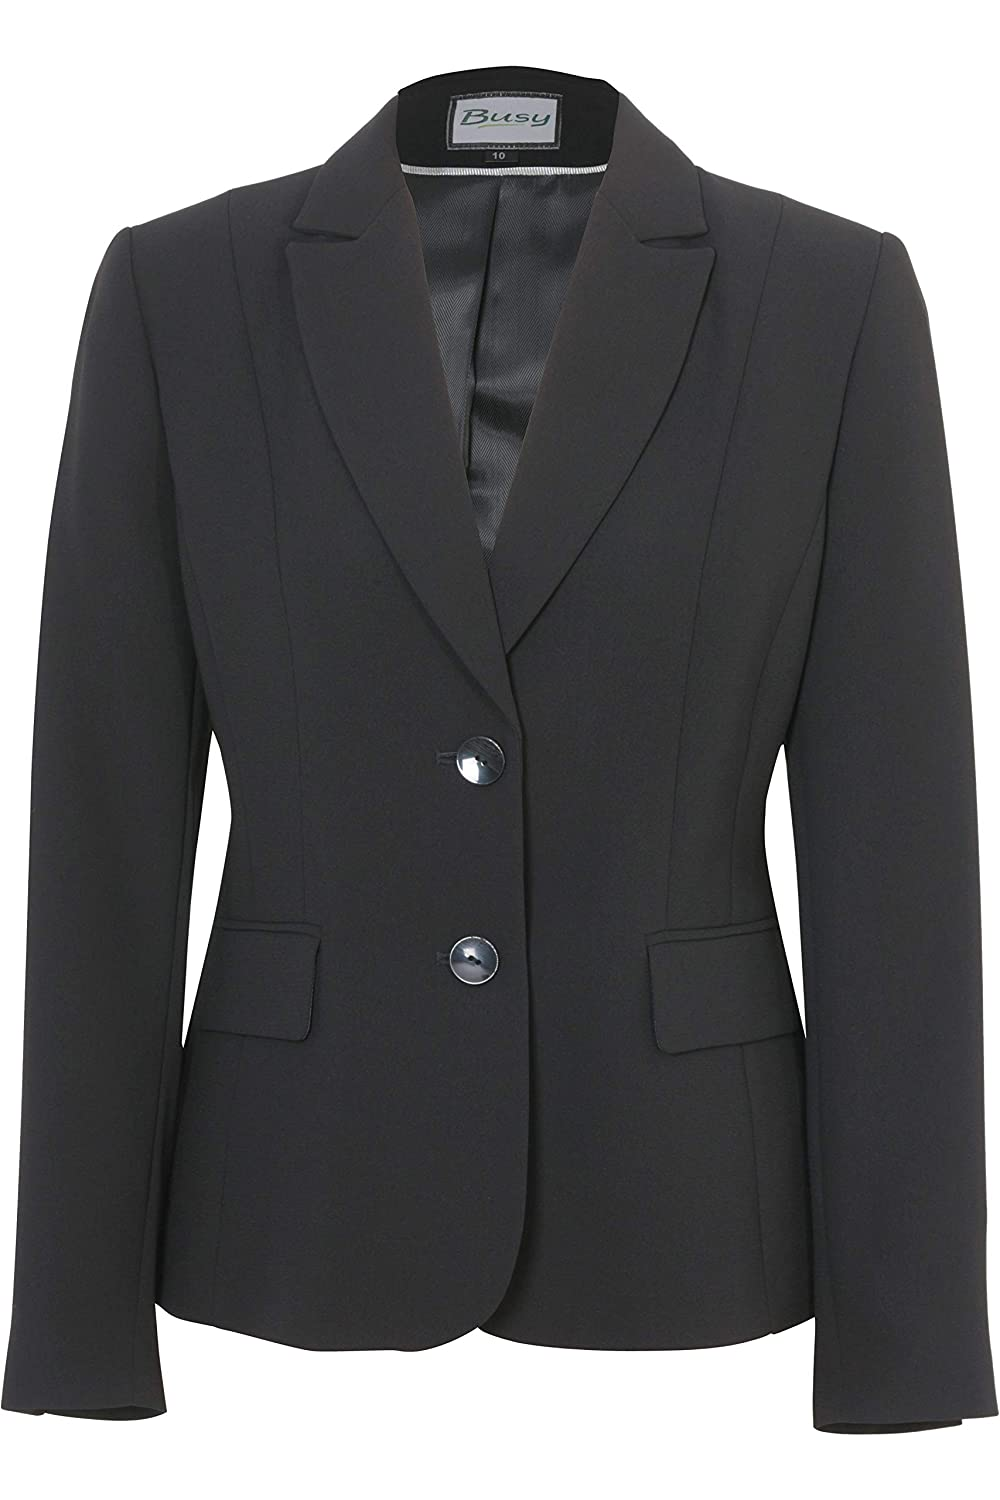 Busy Clothing Womens Black Suit Jacket Black44468